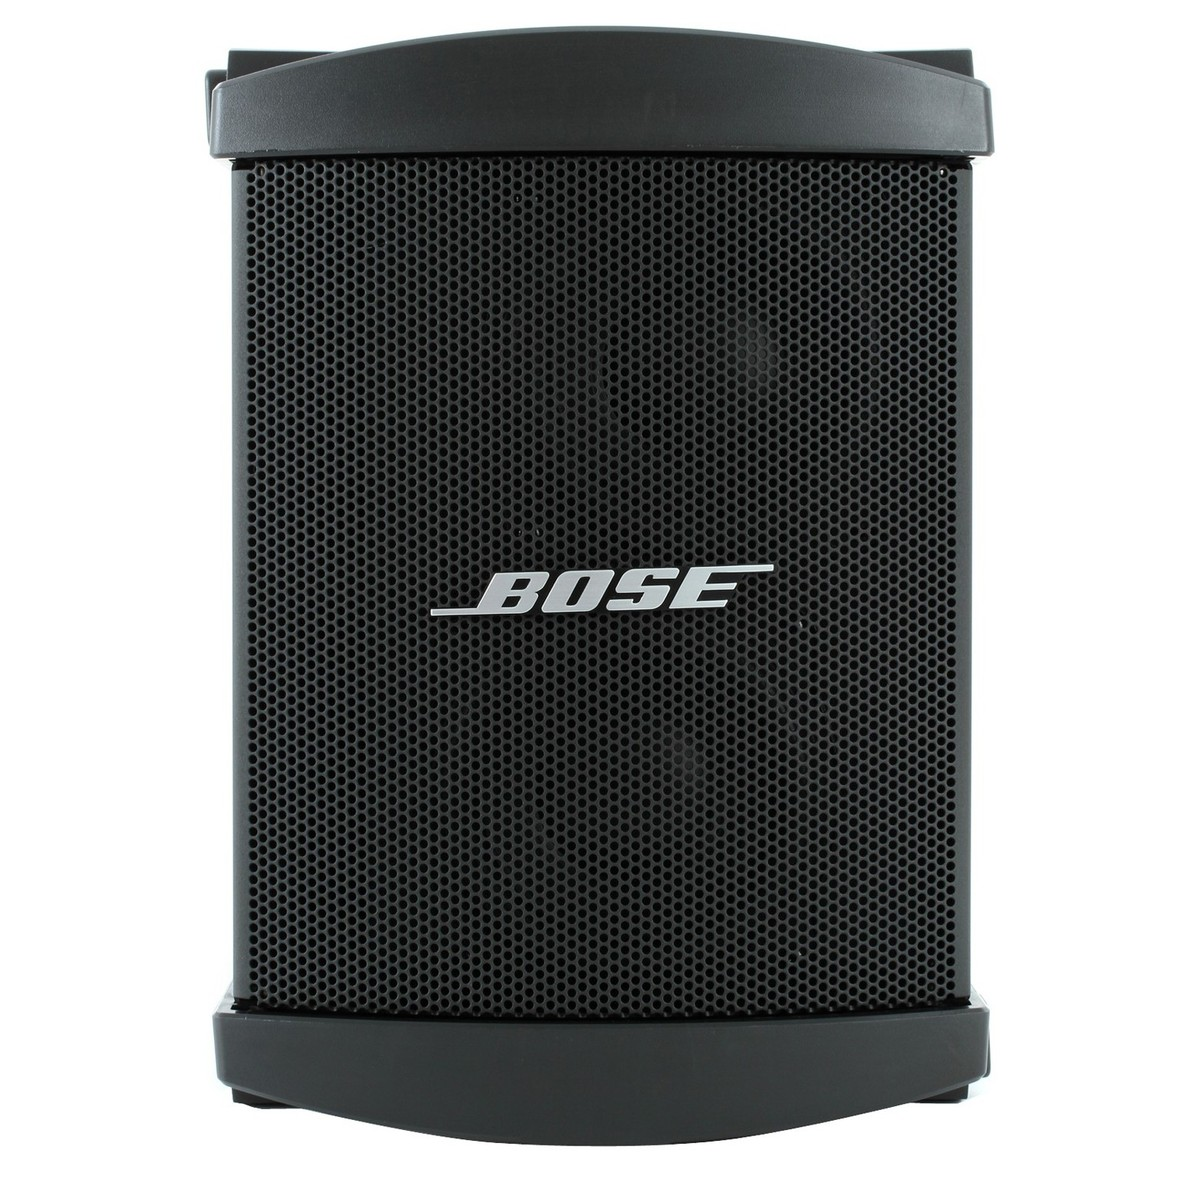 bose l1 model ii sono avec caisson de basses b1 et t1 tonematch. Black Bedroom Furniture Sets. Home Design Ideas